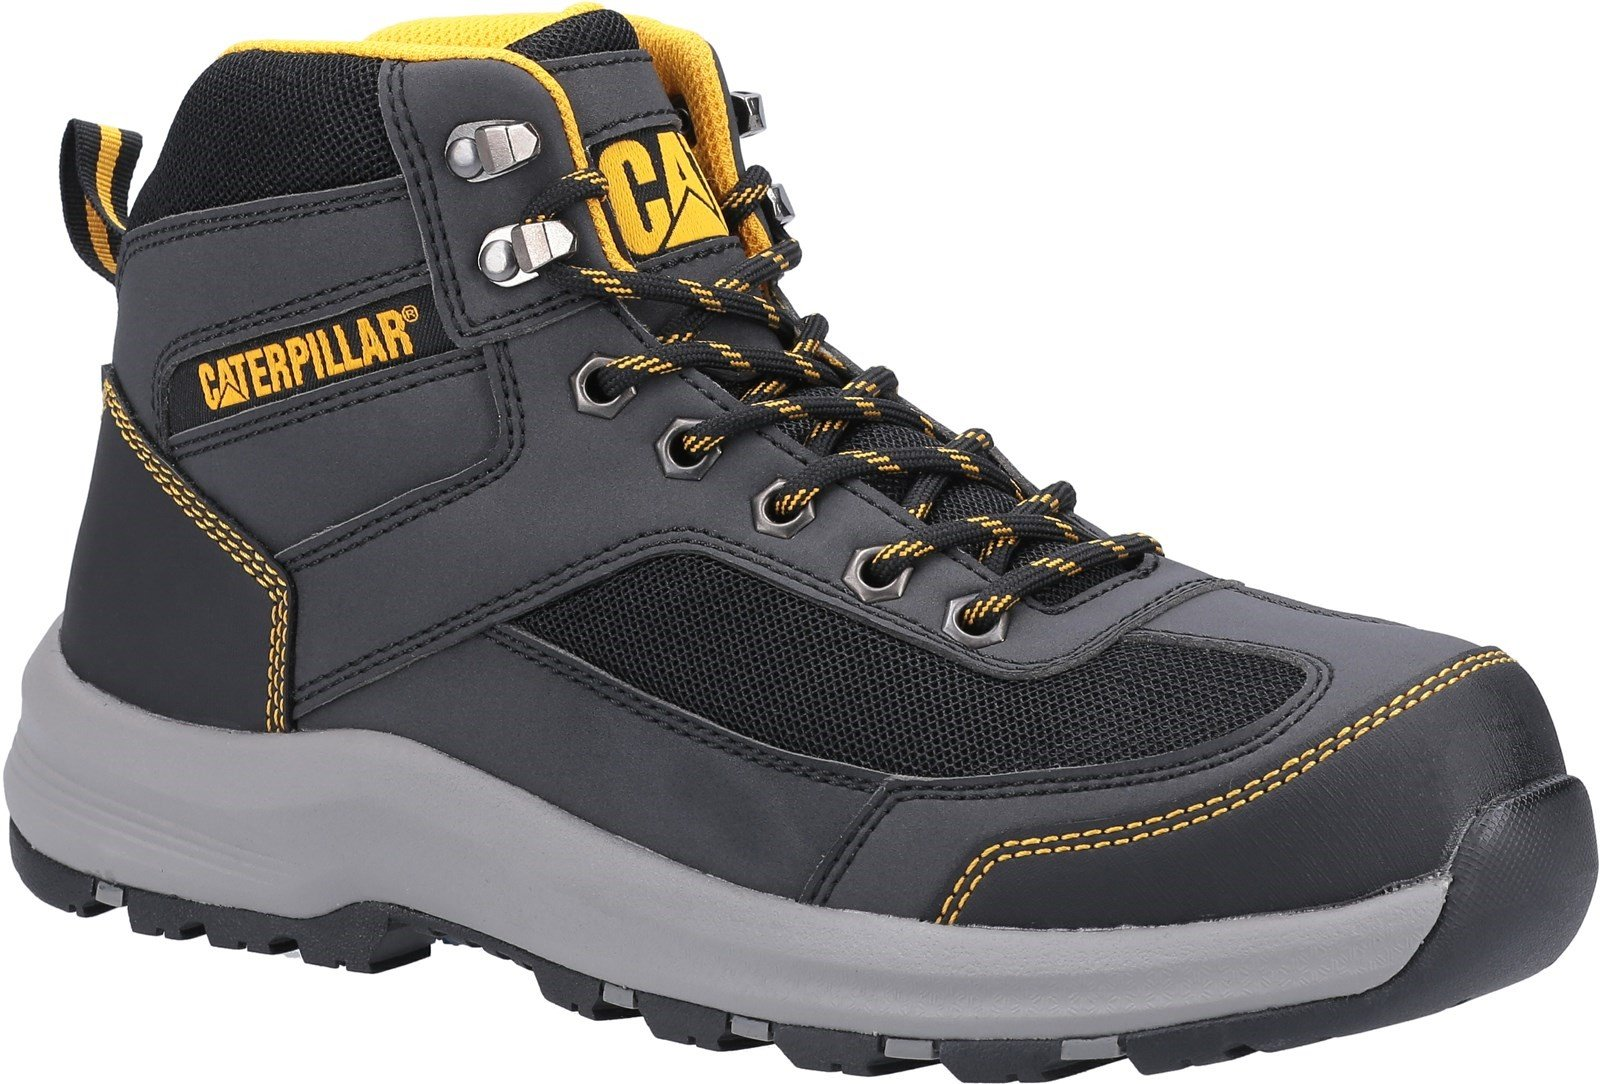 Caterpillar Unisex Elmore Mid Safety Hiker Boot Various Colours - Grey 6